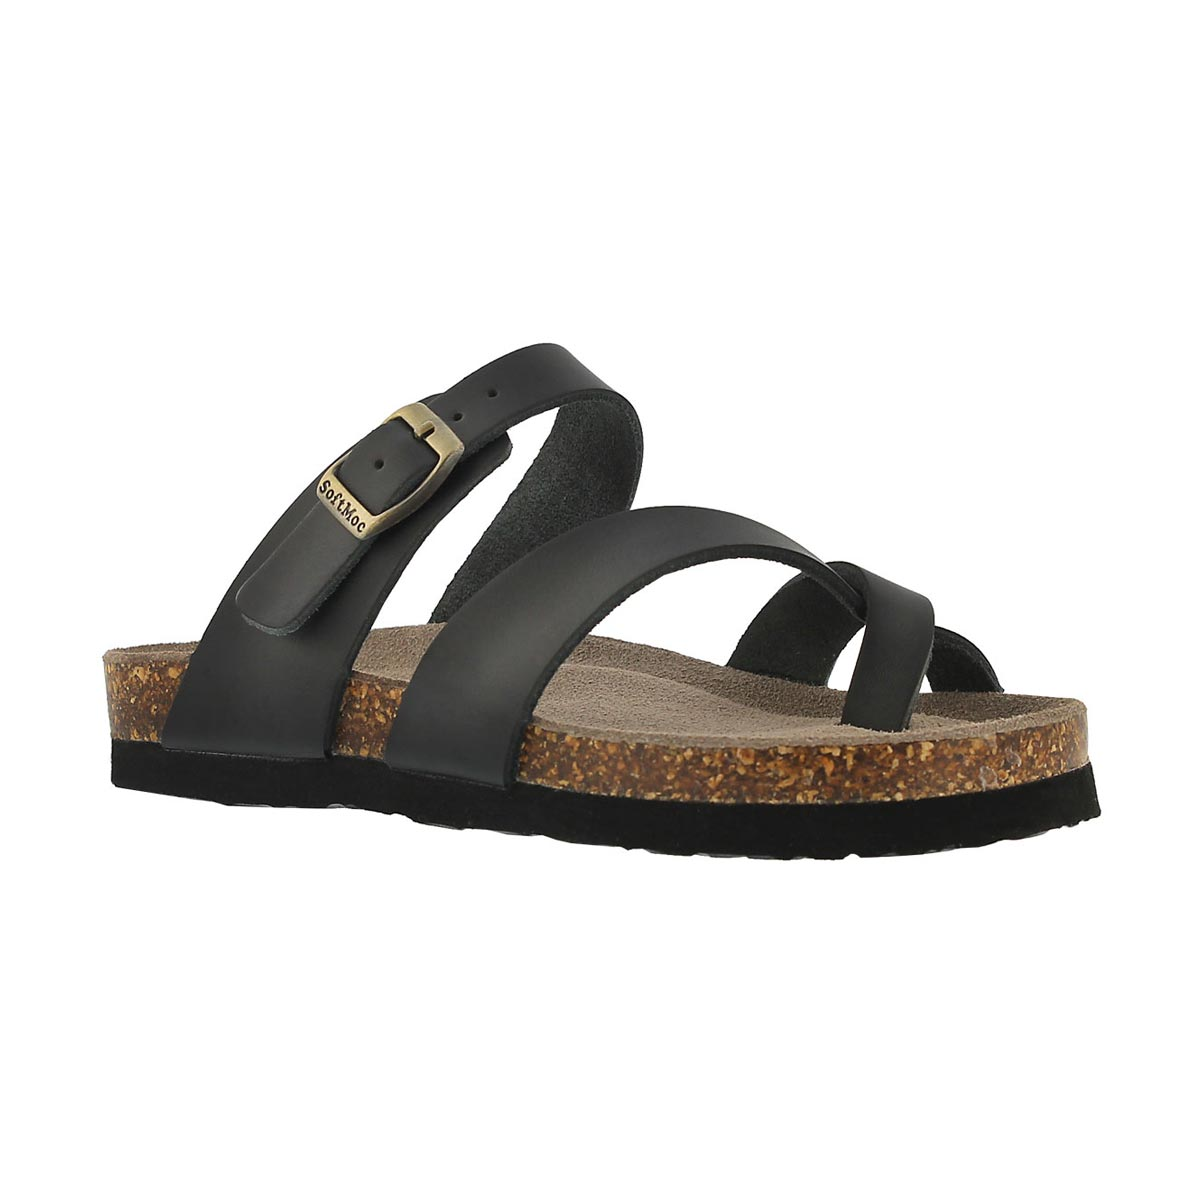 Grls Alicia black lthr toe loop sandal